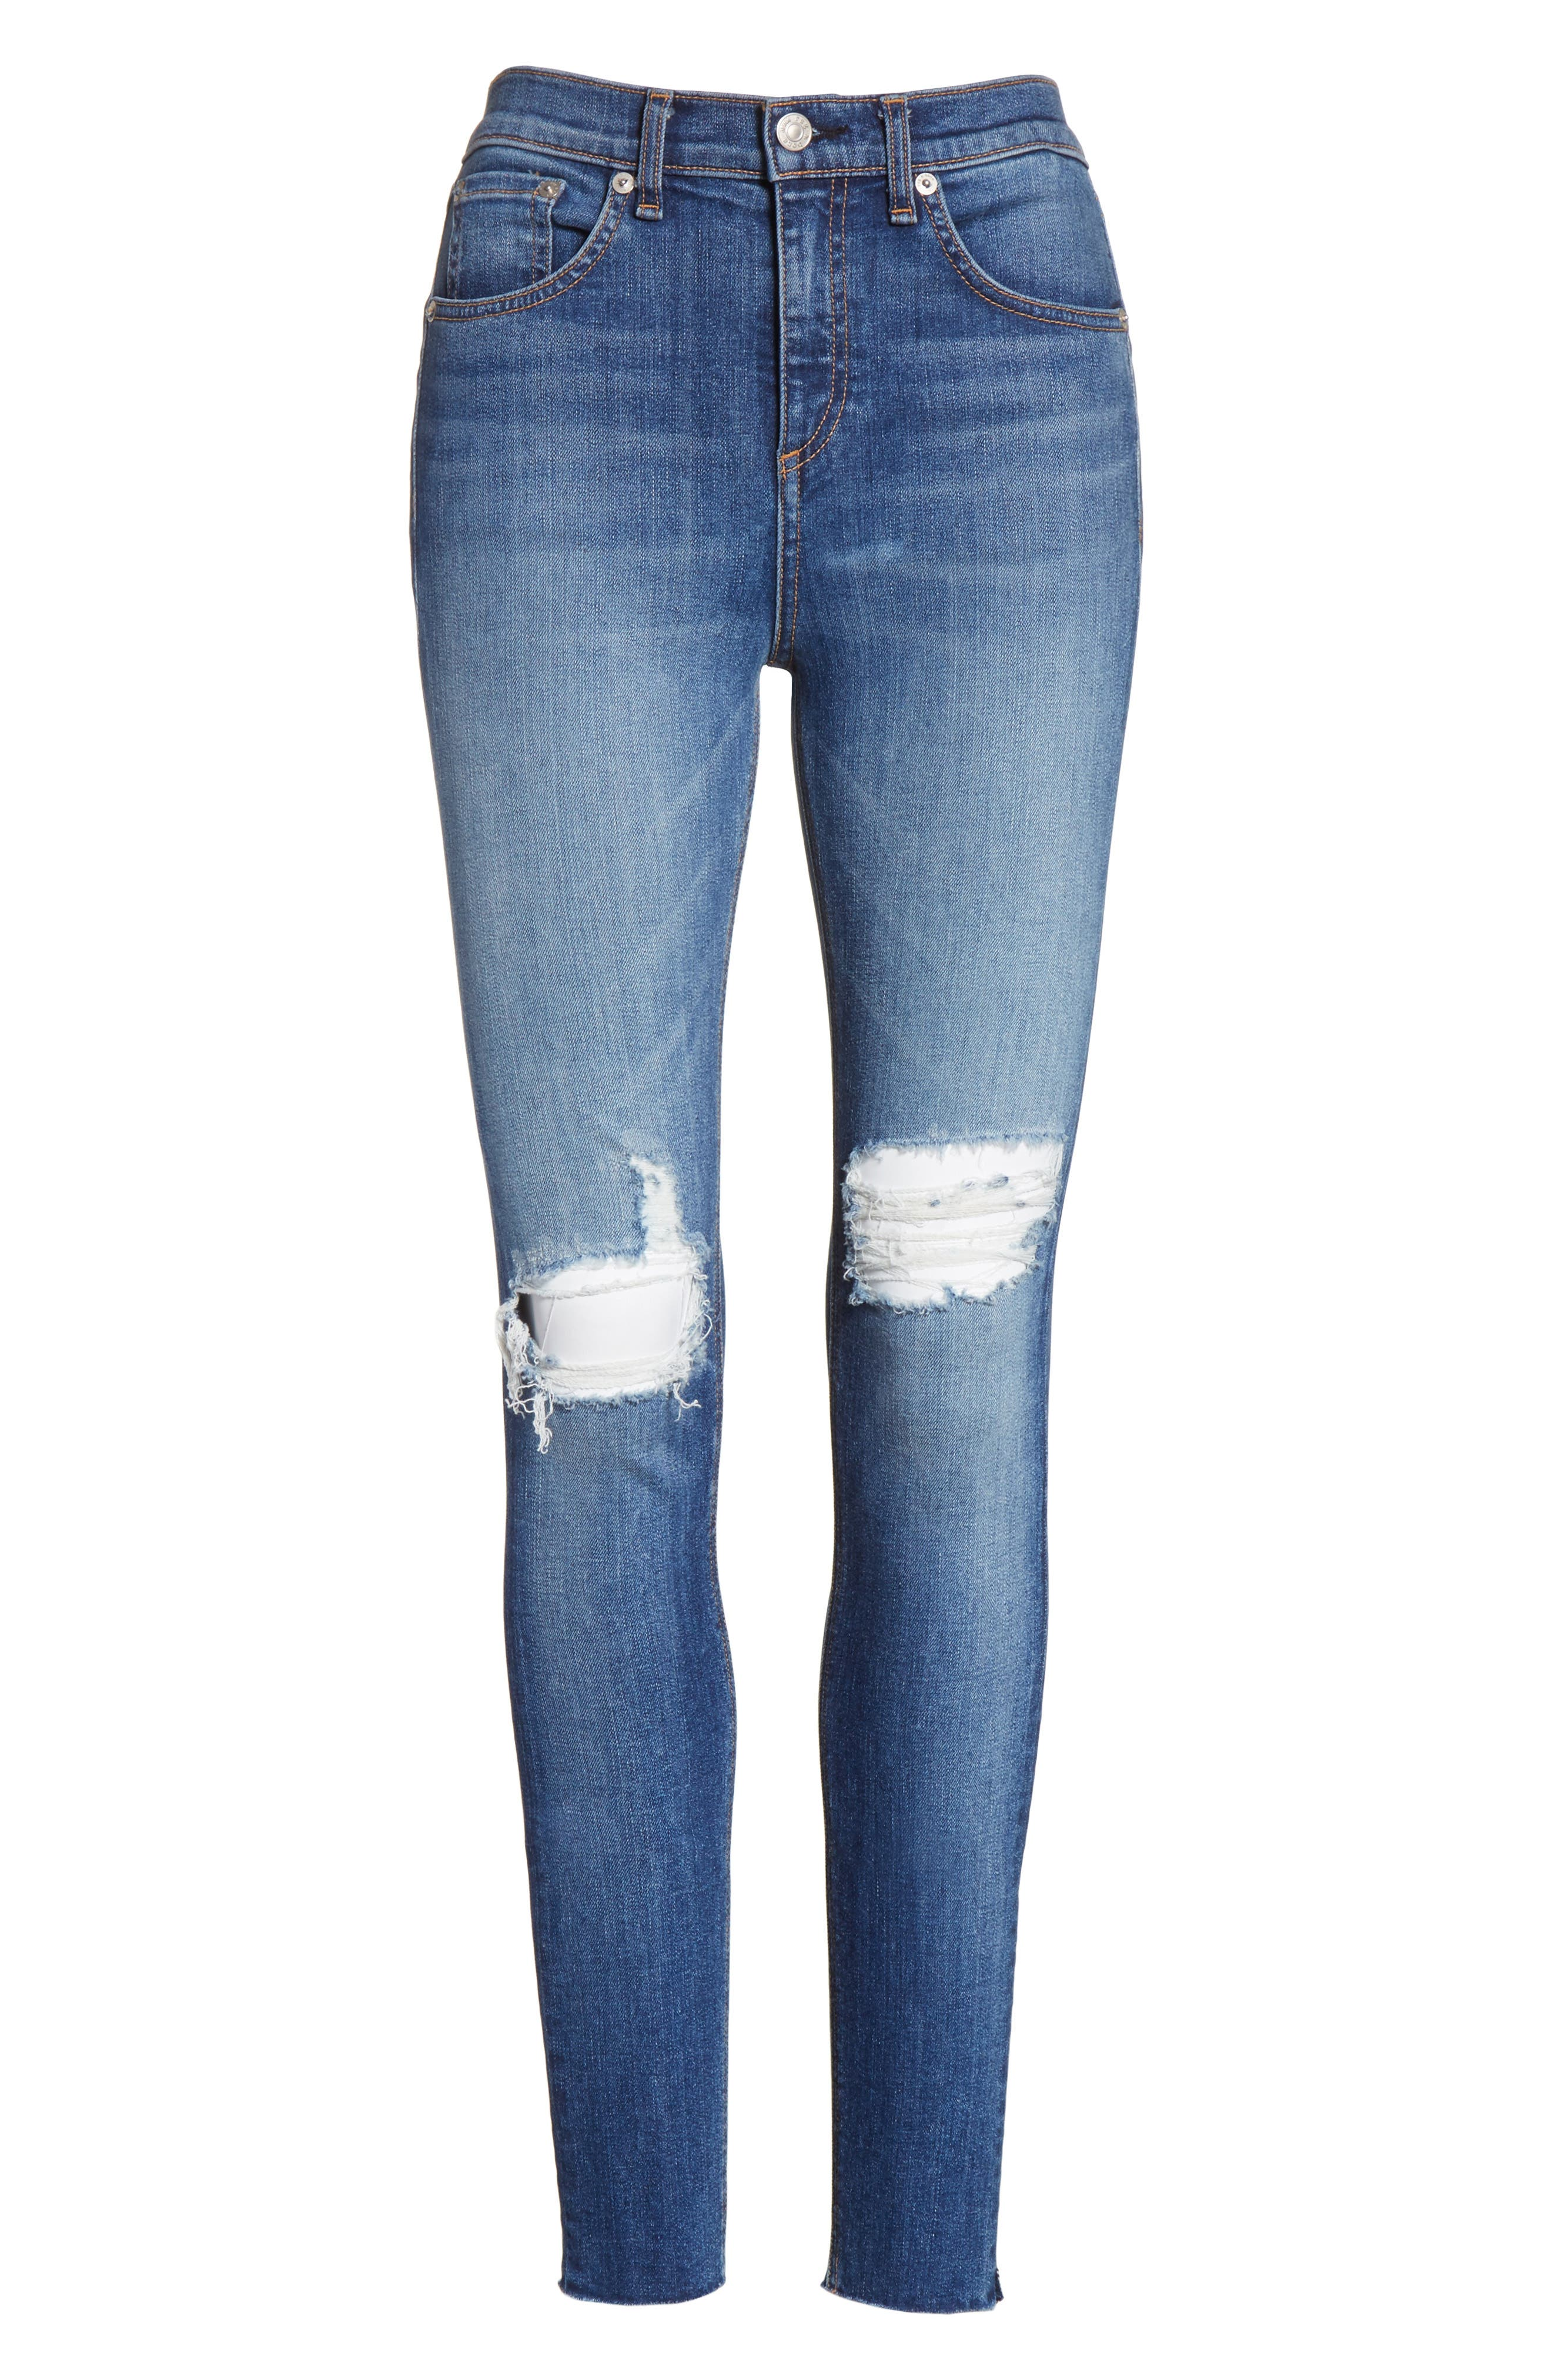 Ripped High Waist Skinny Jeans,                             Alternate thumbnail 6, color,                             Bonnie